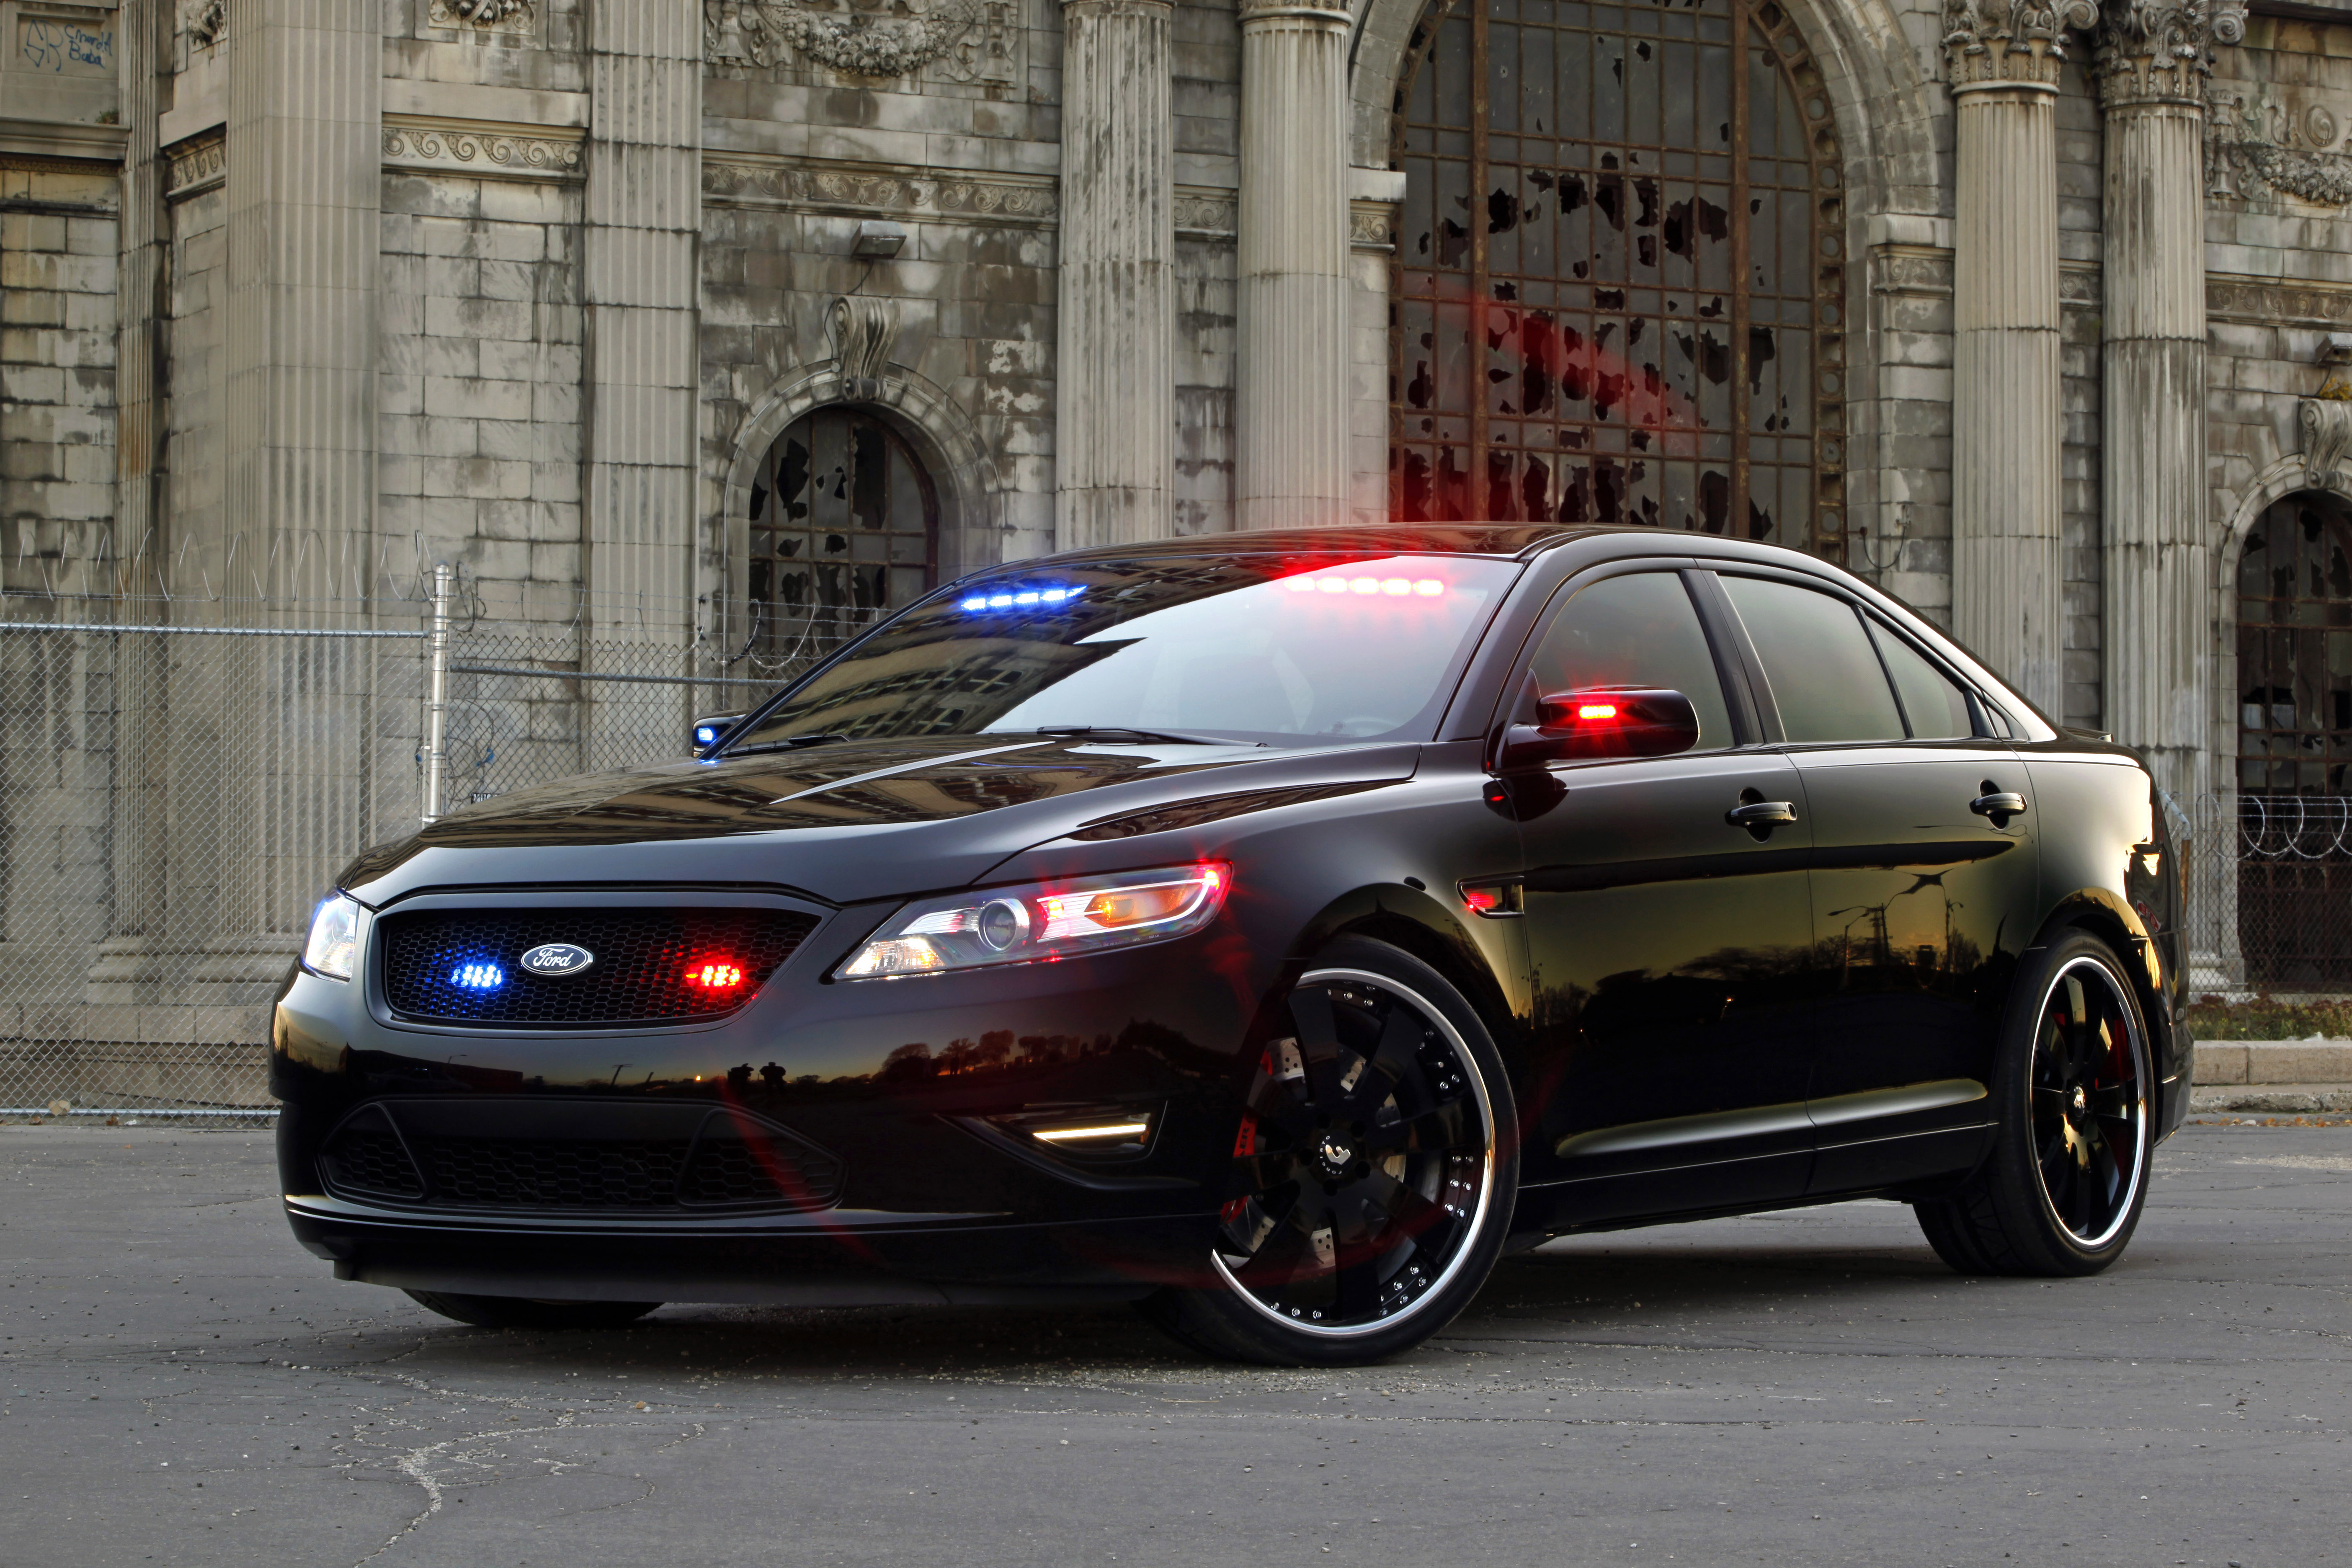 2019 Ford Stealth Police Interceptor Concept photo - 5